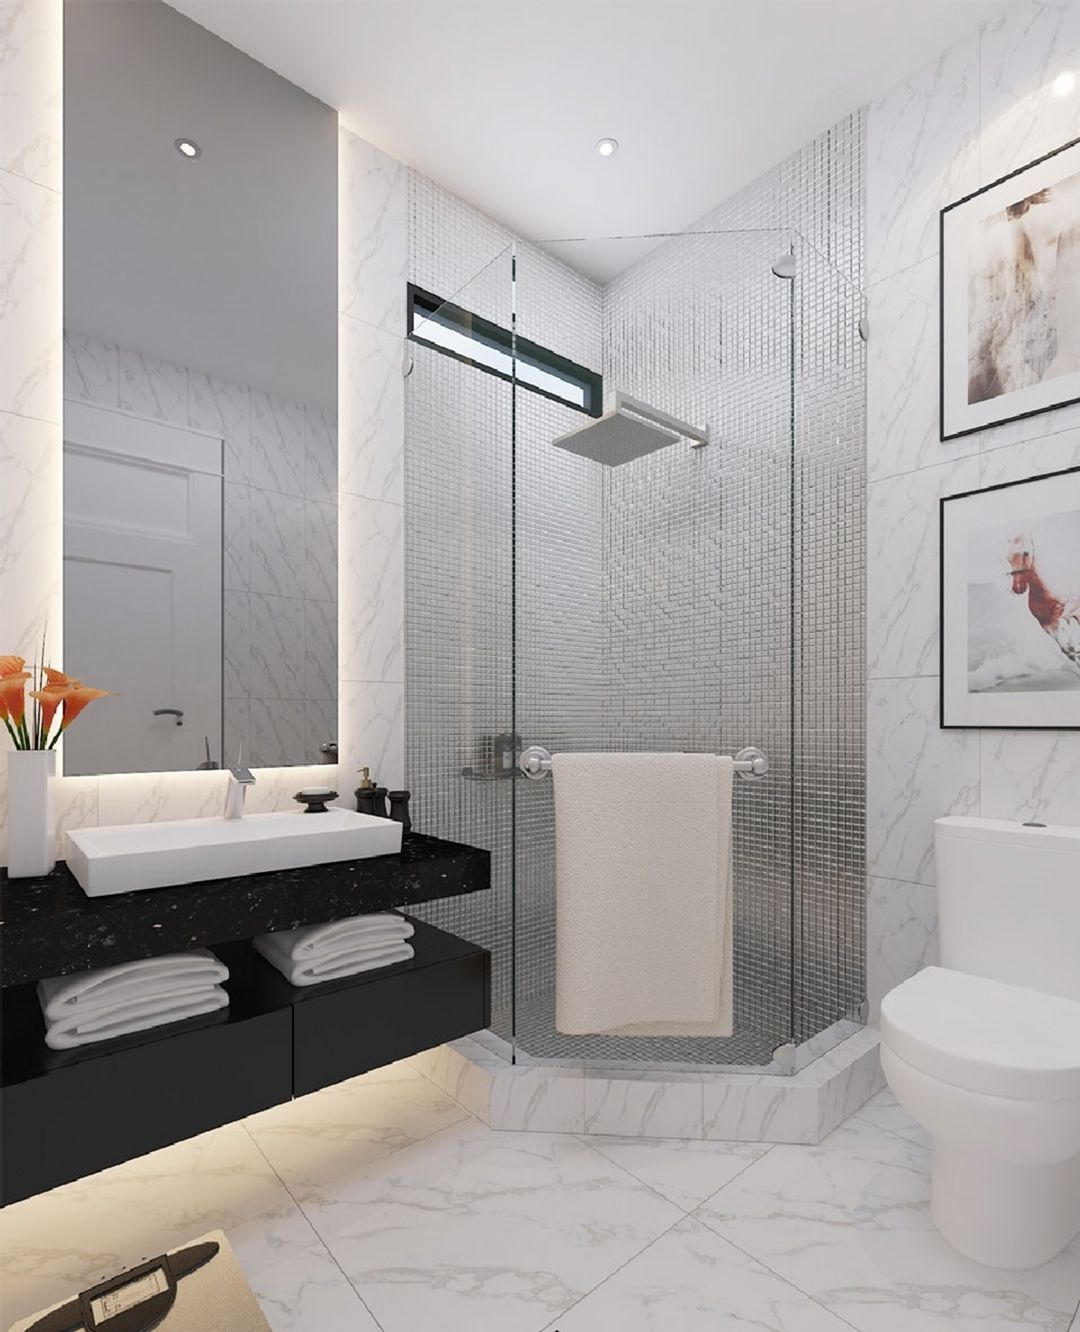 15 Awesome Inspiration For The Design Of Simple Minimalist Bathrooms In 2019 Bathroom Design Inspiration Minimalist Bathroom Minimalist Bathroom Design